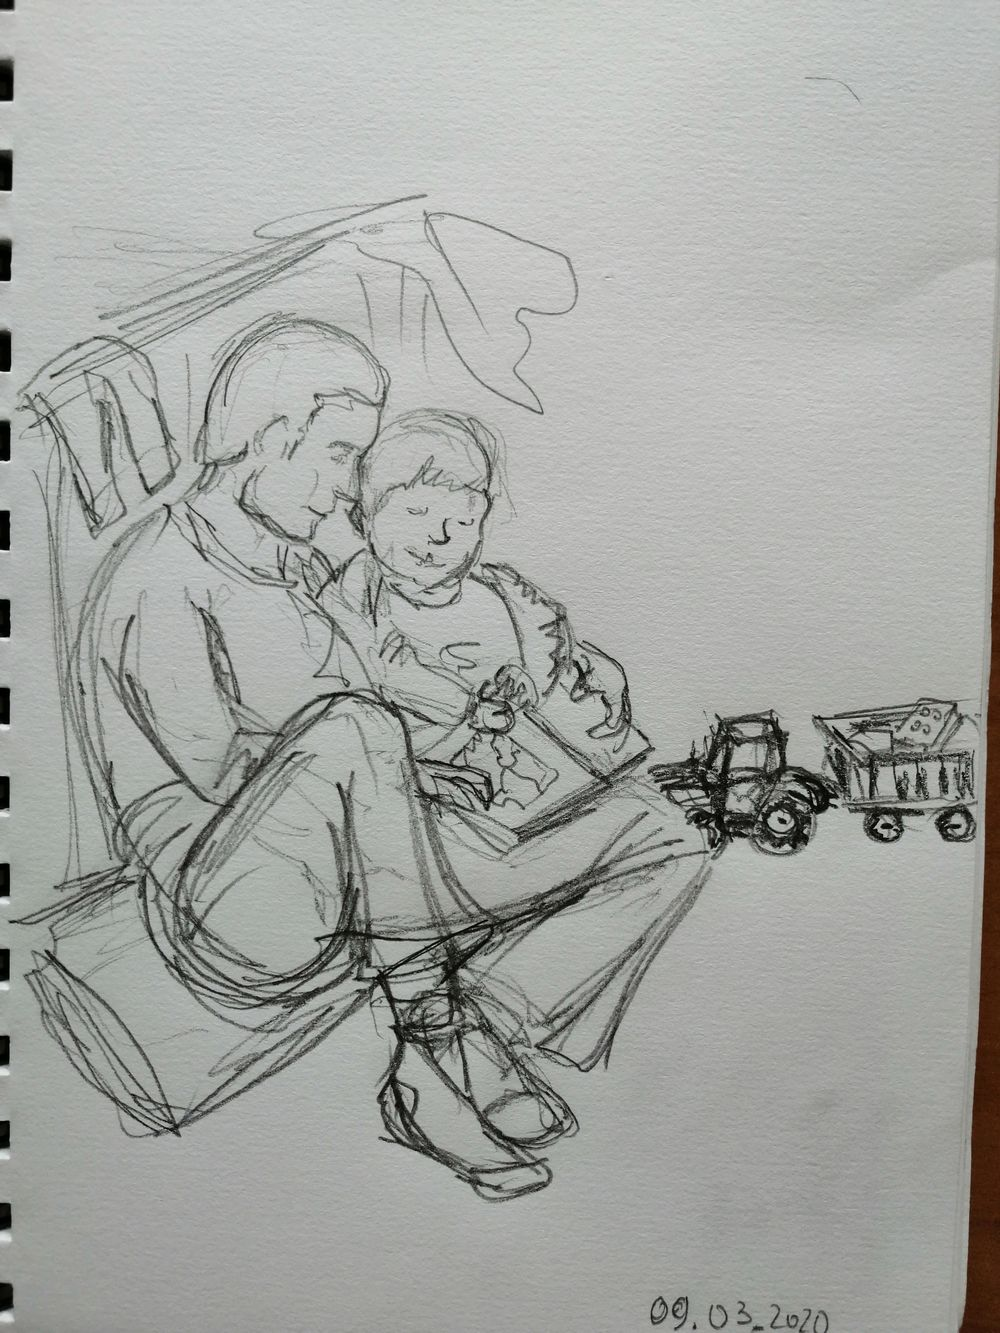 14 days of Sketching - image 10 - student project